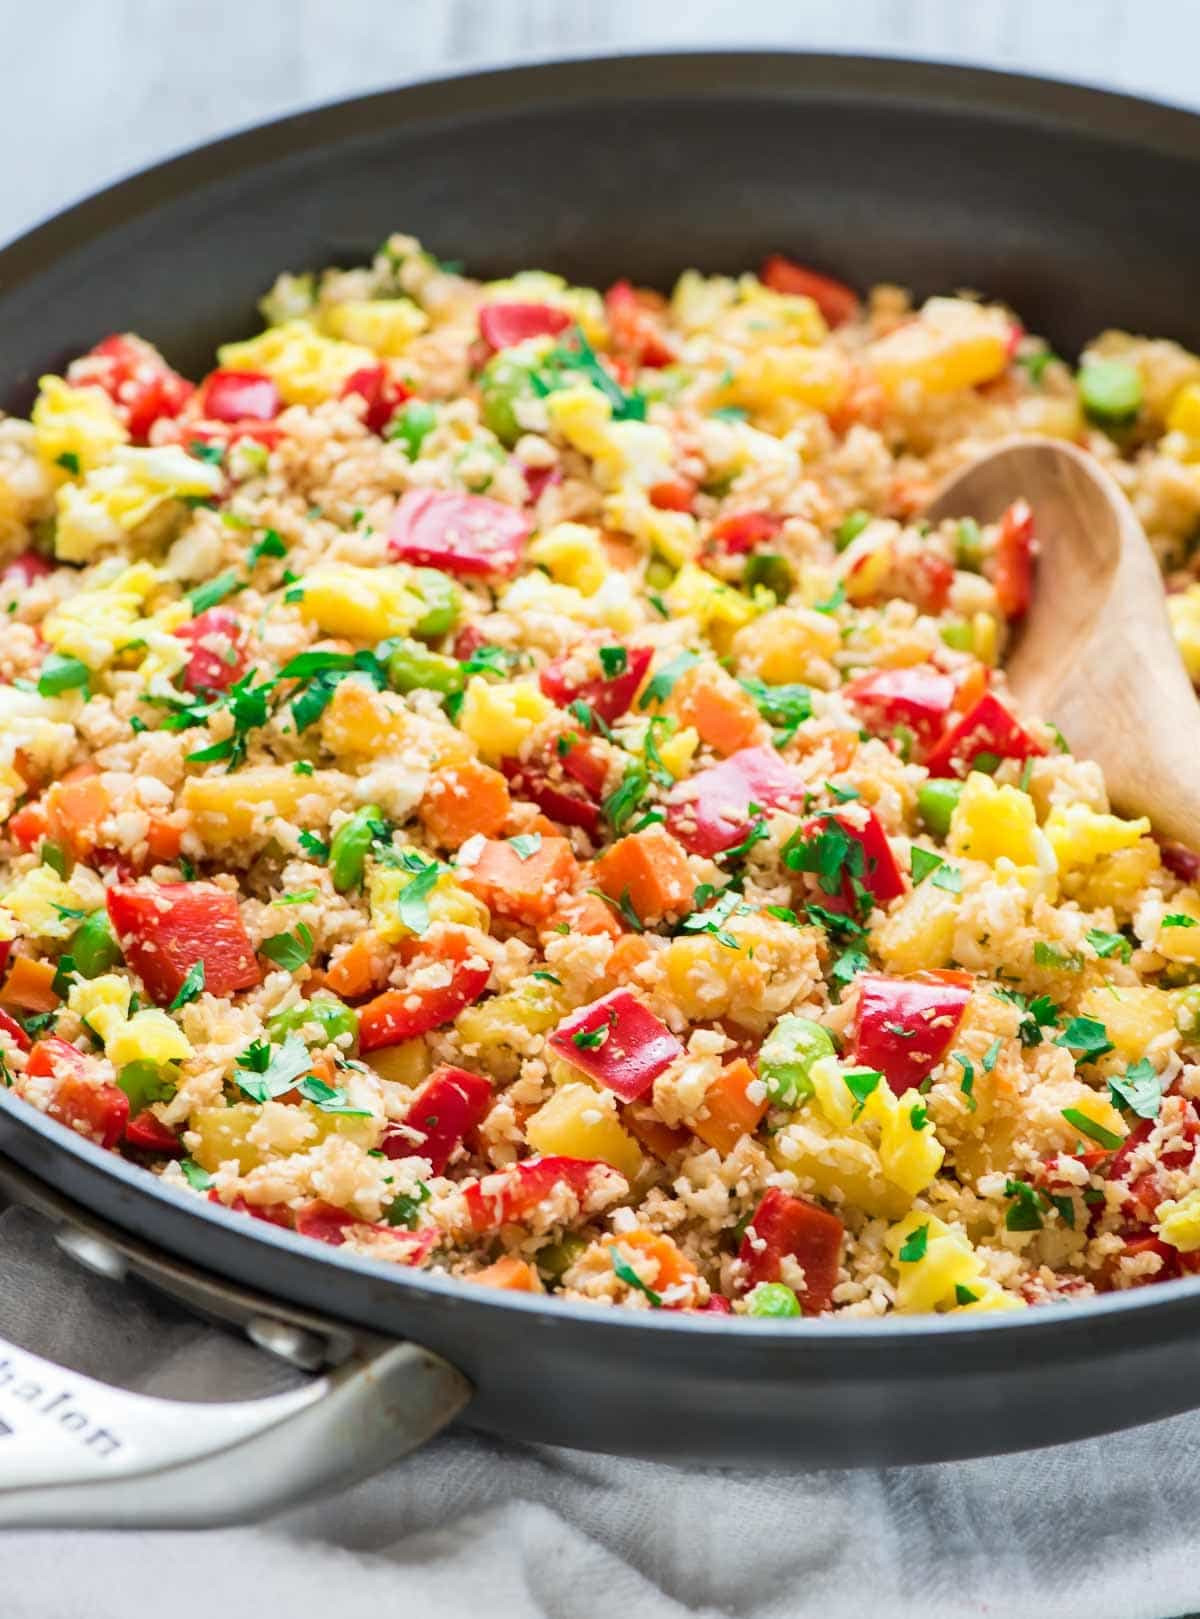 Healthy Fried Rice Recipes  Healthy Fried Rice